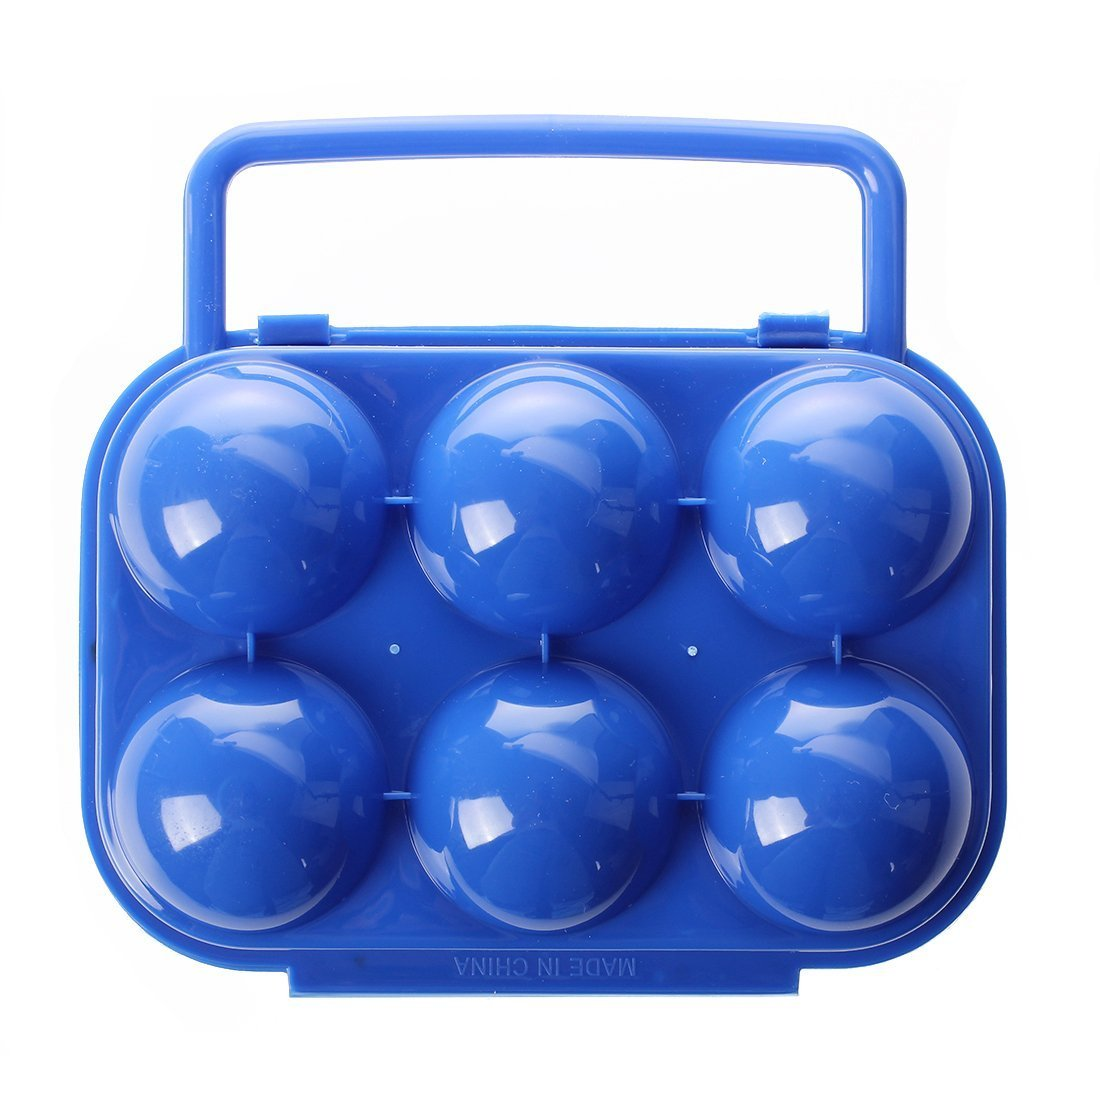 SODIAL(R) Portable Folding Plastic Egg Carrier Holder Storage Container for 6 Eggs - Blue AEQW-WER-AW146634